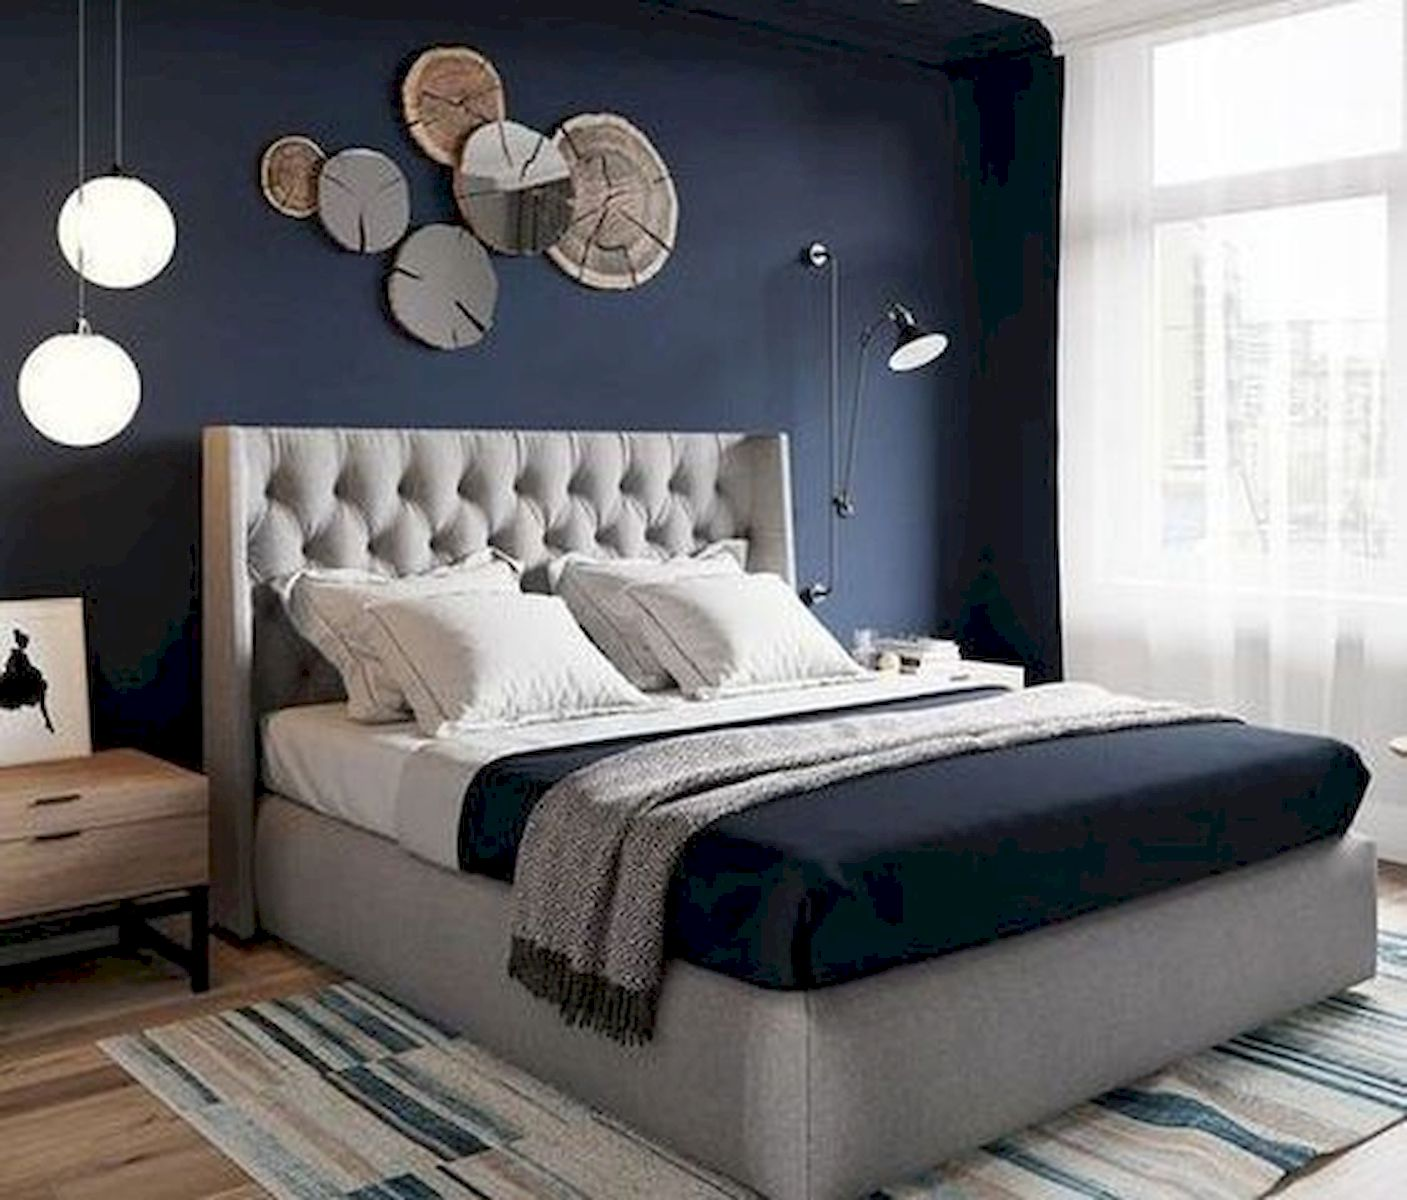 36 Creative DIY Wall Bedroom Decor Ideas That Unique and Beautiful (14)